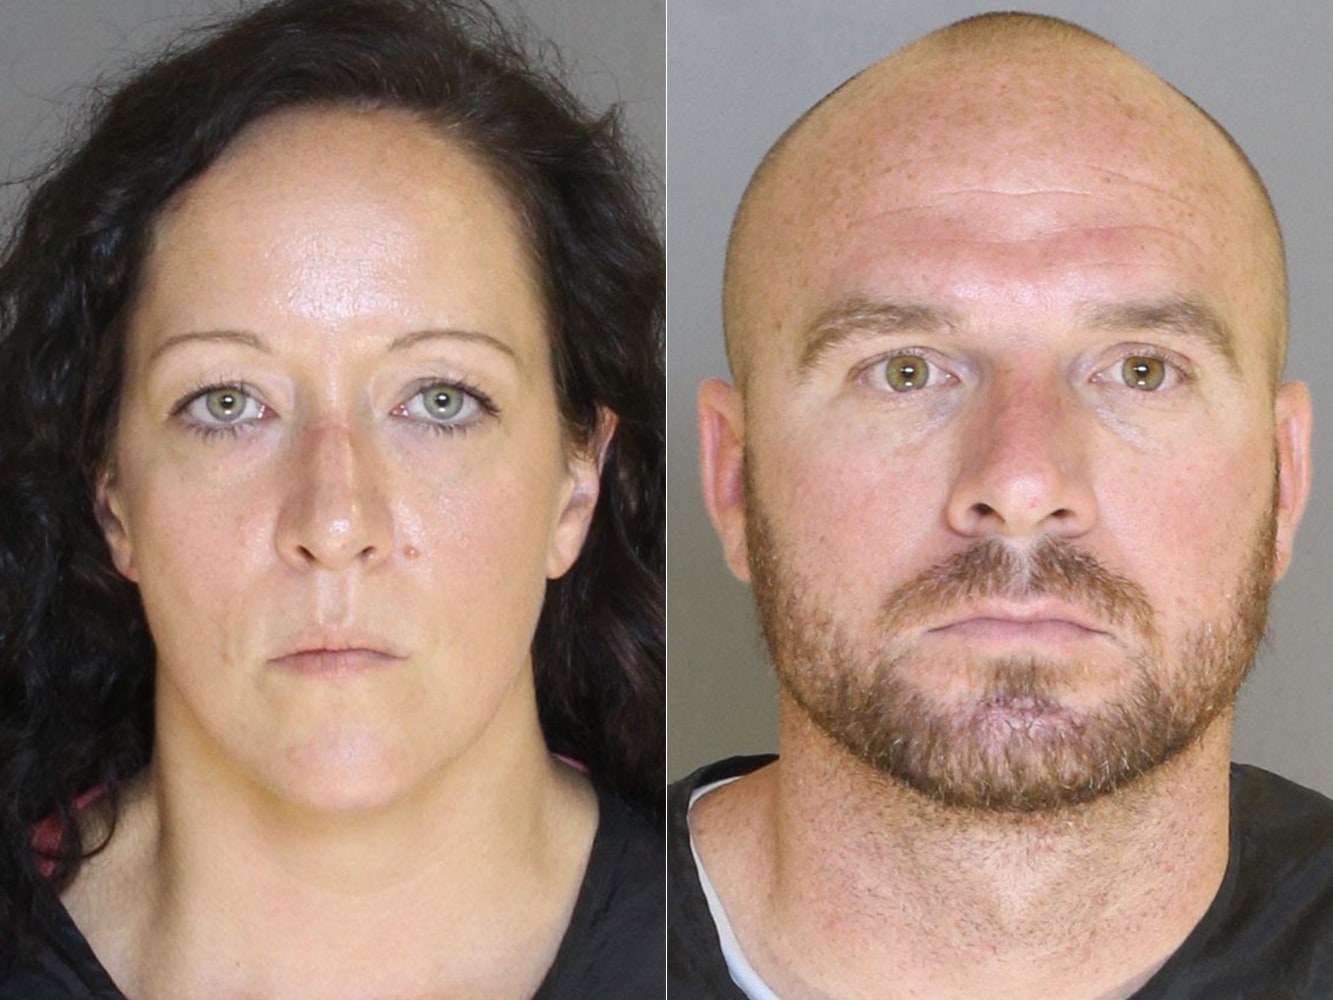 Crystal Driggers and James Driggers. Sumter County Sheriff's Office - 150706-driggers-4p_copy_def8f74deeb1a4801d493c67ba7428fe.nbcnews-ux-2880-1000